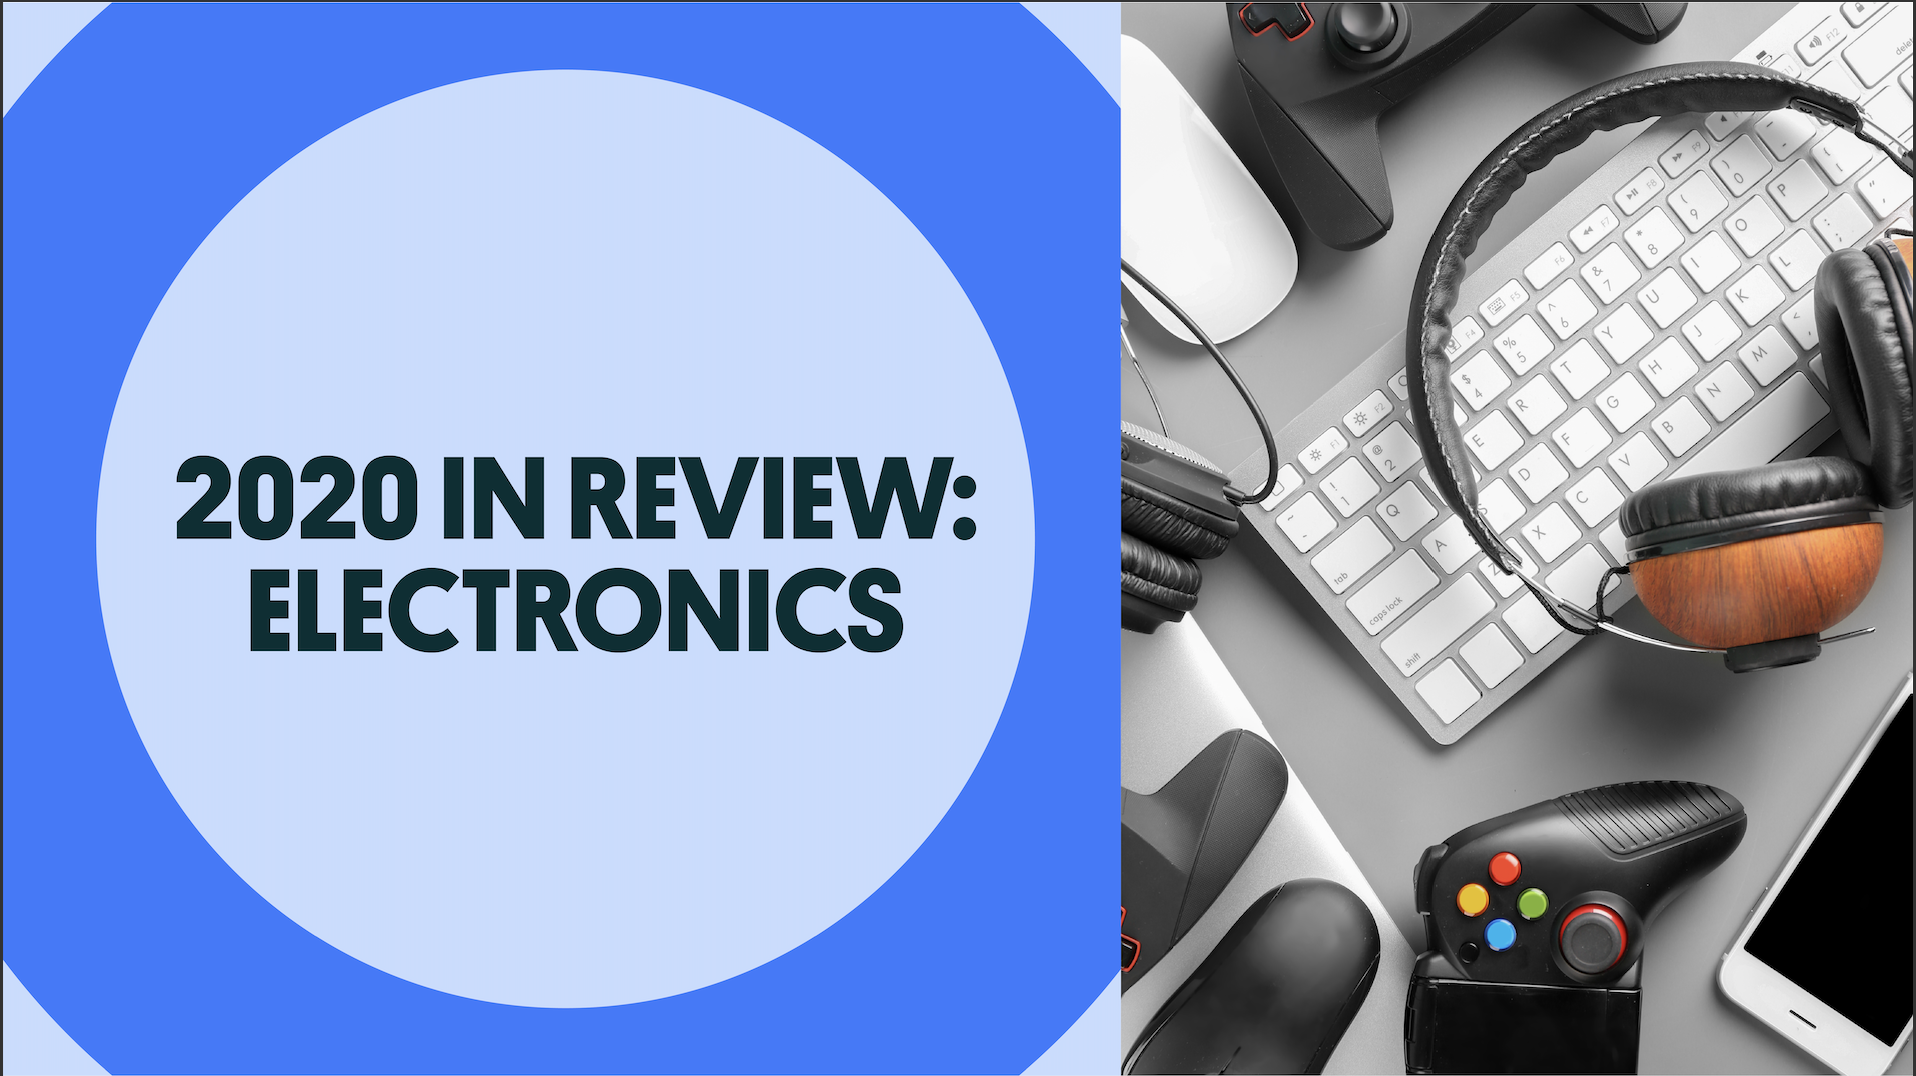 2020 In Review: Electronics